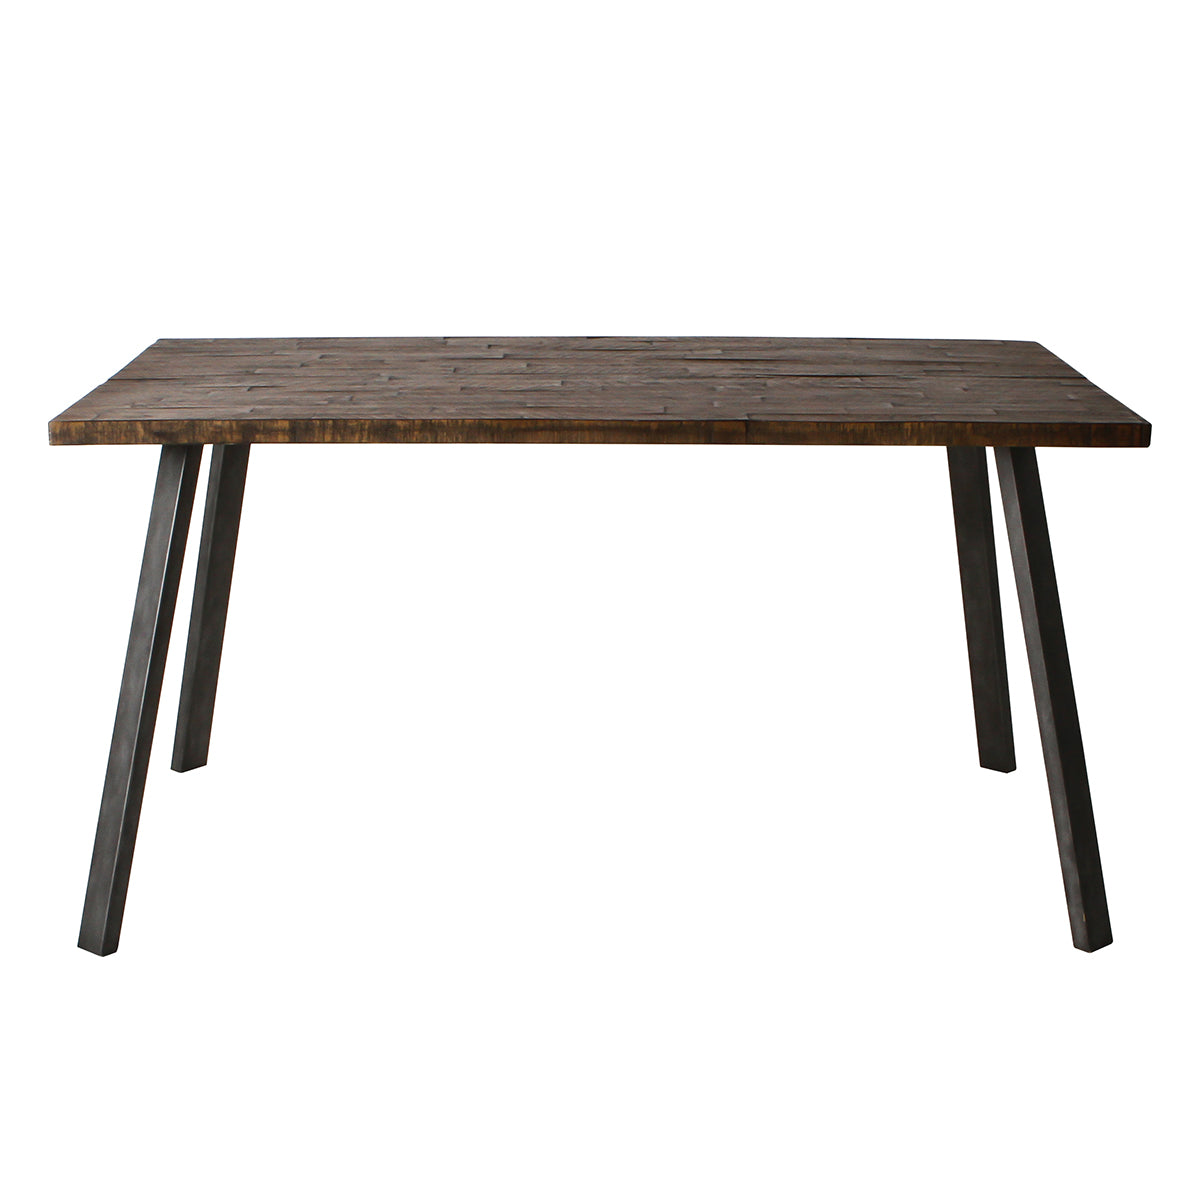 Somers Rectangular Dining Table Rustic